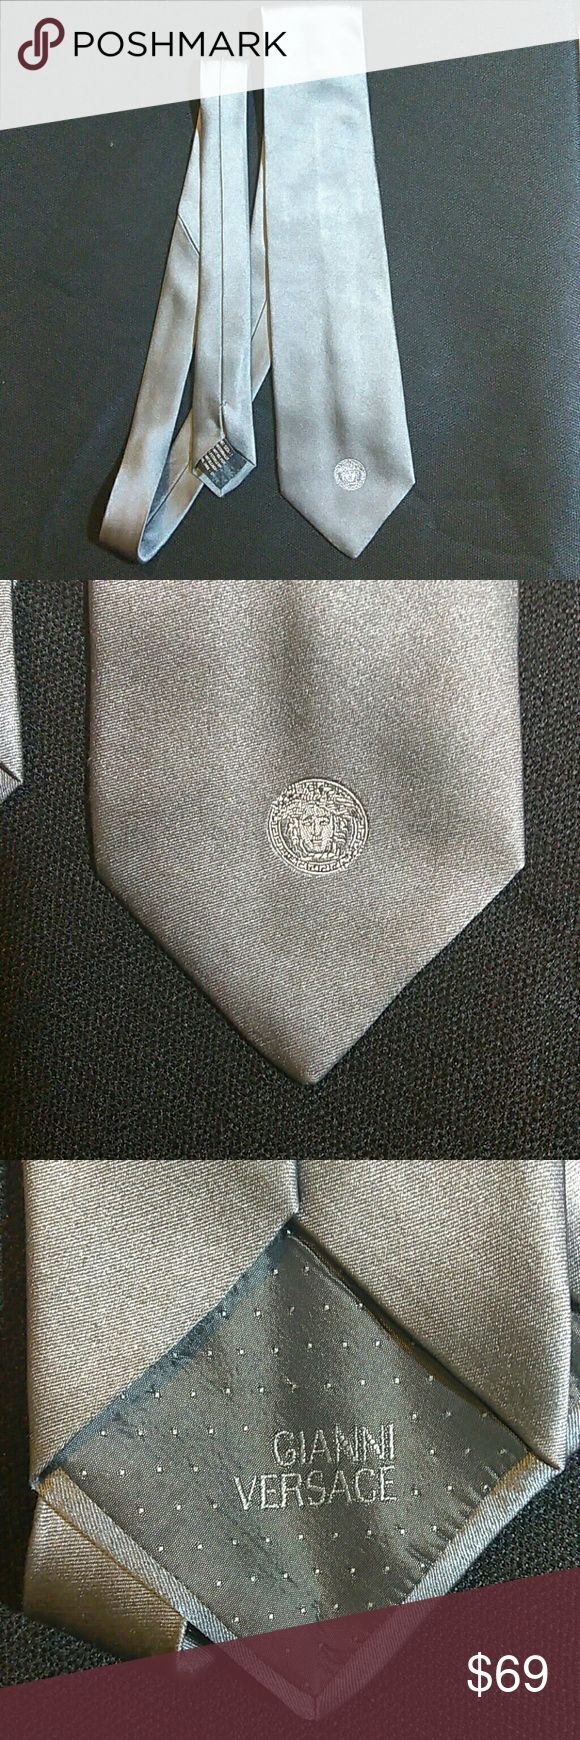 Versace Tie Authentic Versace  Silver 100% silk tie is in good condition. Thin pen mark on time but not in a noticeable spot. Price reflects pen mark. Accessories Ties